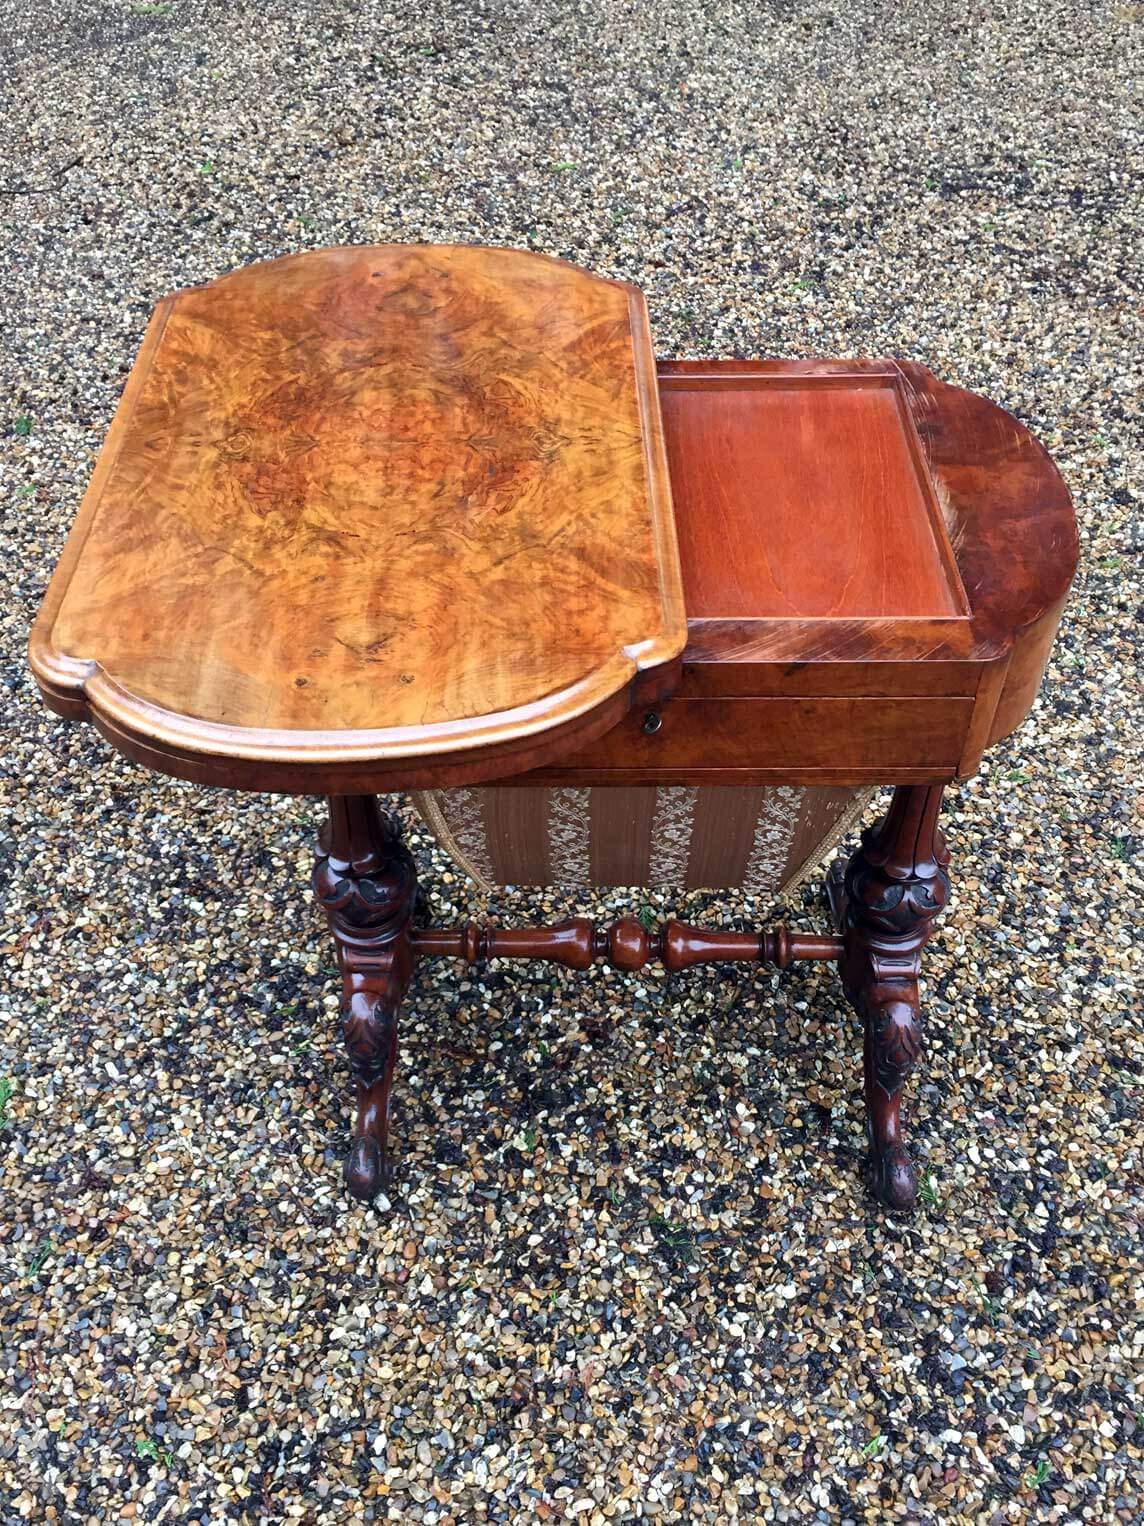 Victorian Burr Walnut Work / Games Table. Opening Up The Top Reveals A  Tulipwood And Boxwood Chess/draughts Board, A Boxwood, Ebony And Tulipwood  Backgammon ...